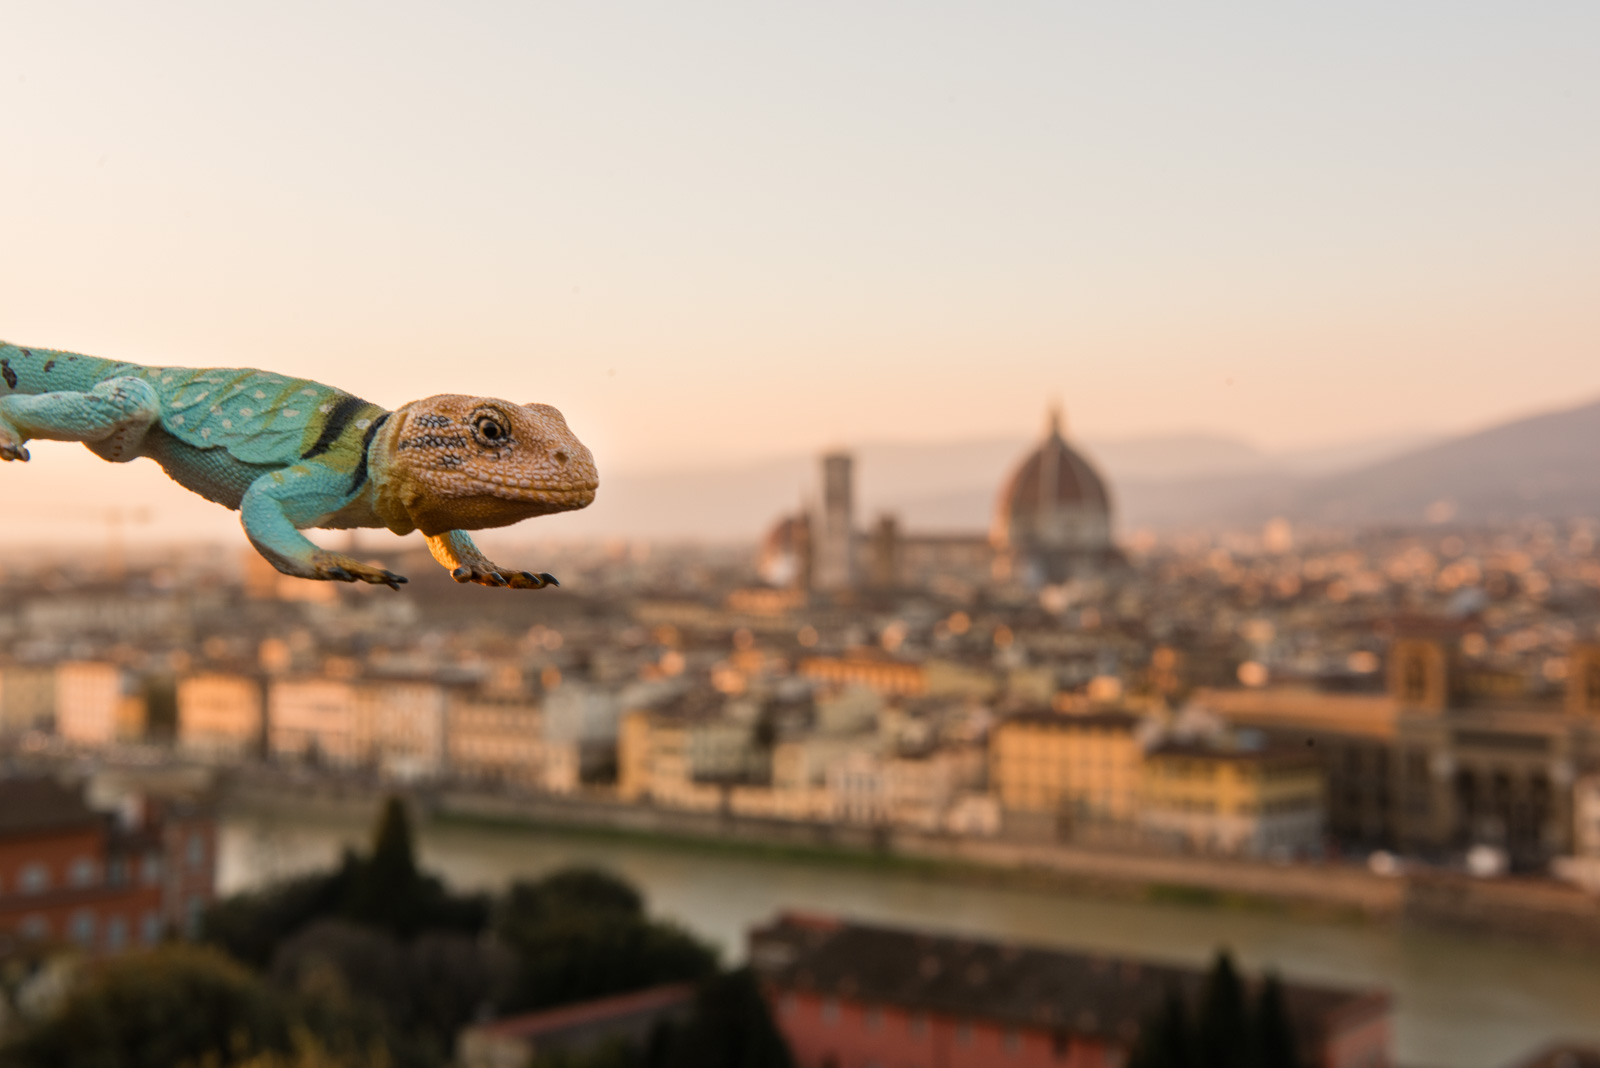 Kanab looming over the Duomo in Florence, Italy. Not quite Godzilla.